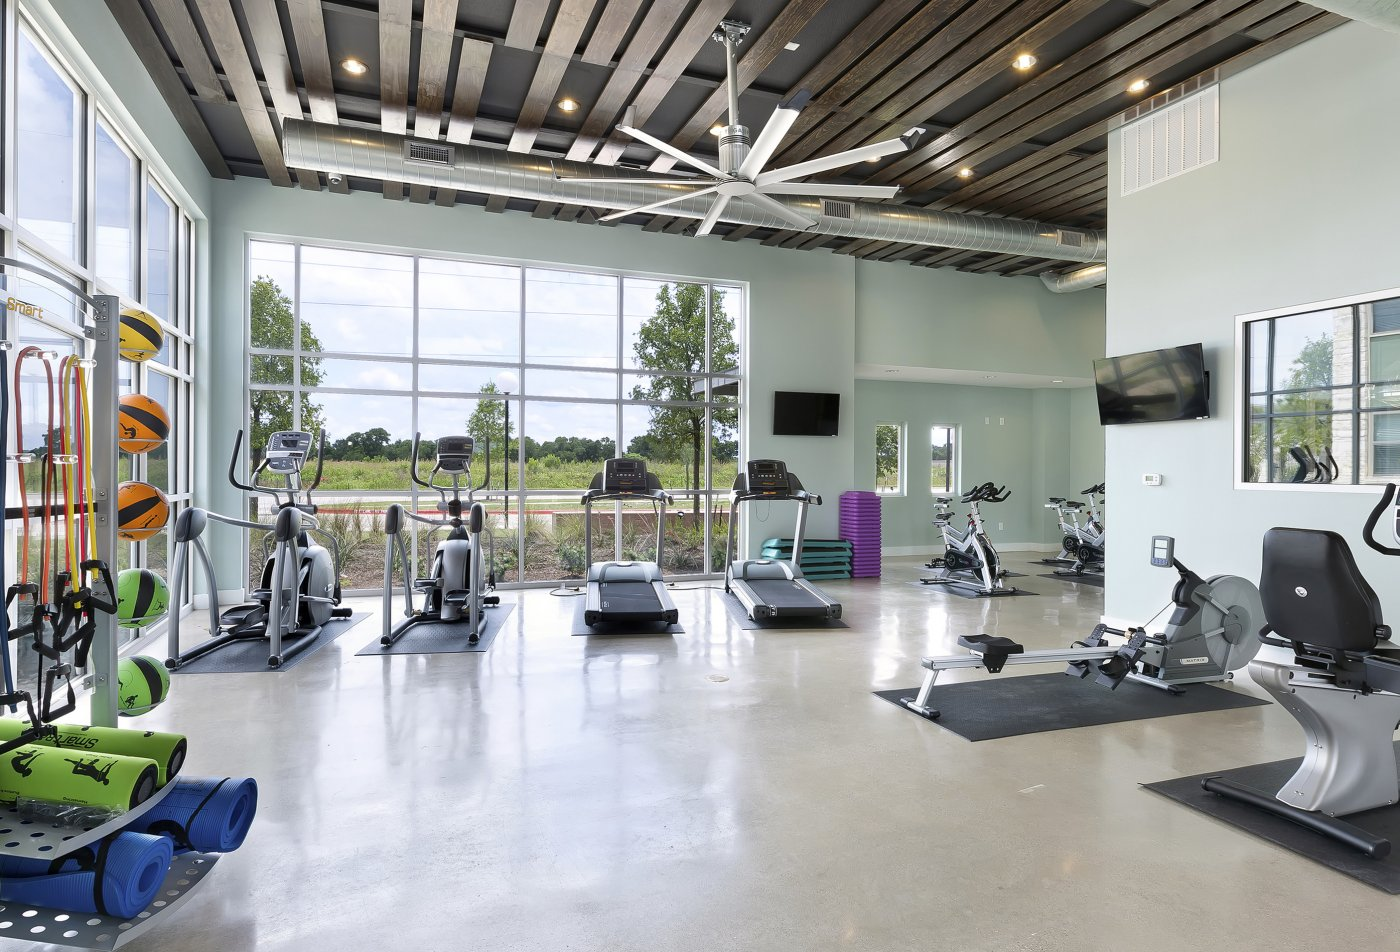 Fitness Center at The Standard at Leander Station